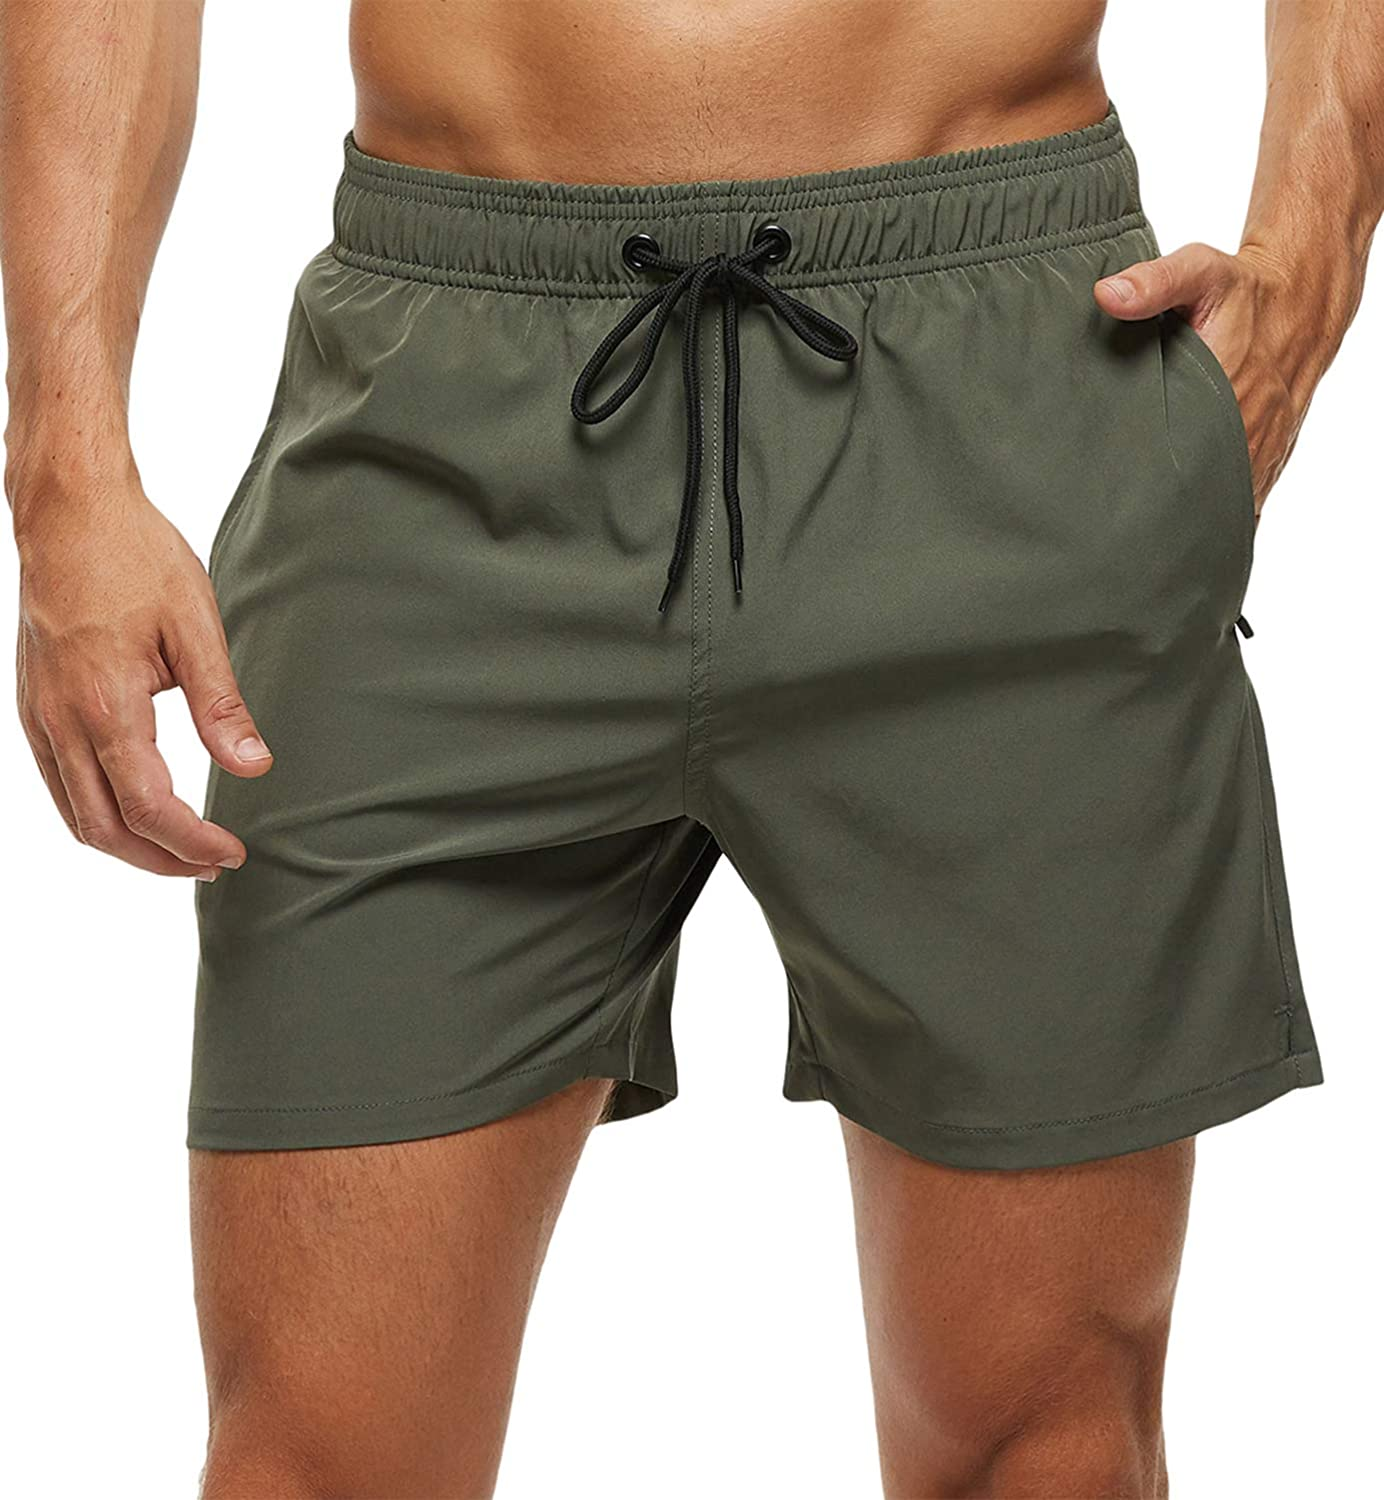 Tyhengta Men S Swim Trunks Quick Dry Beach Shorts With Zipper Pockets And Mesh Lining